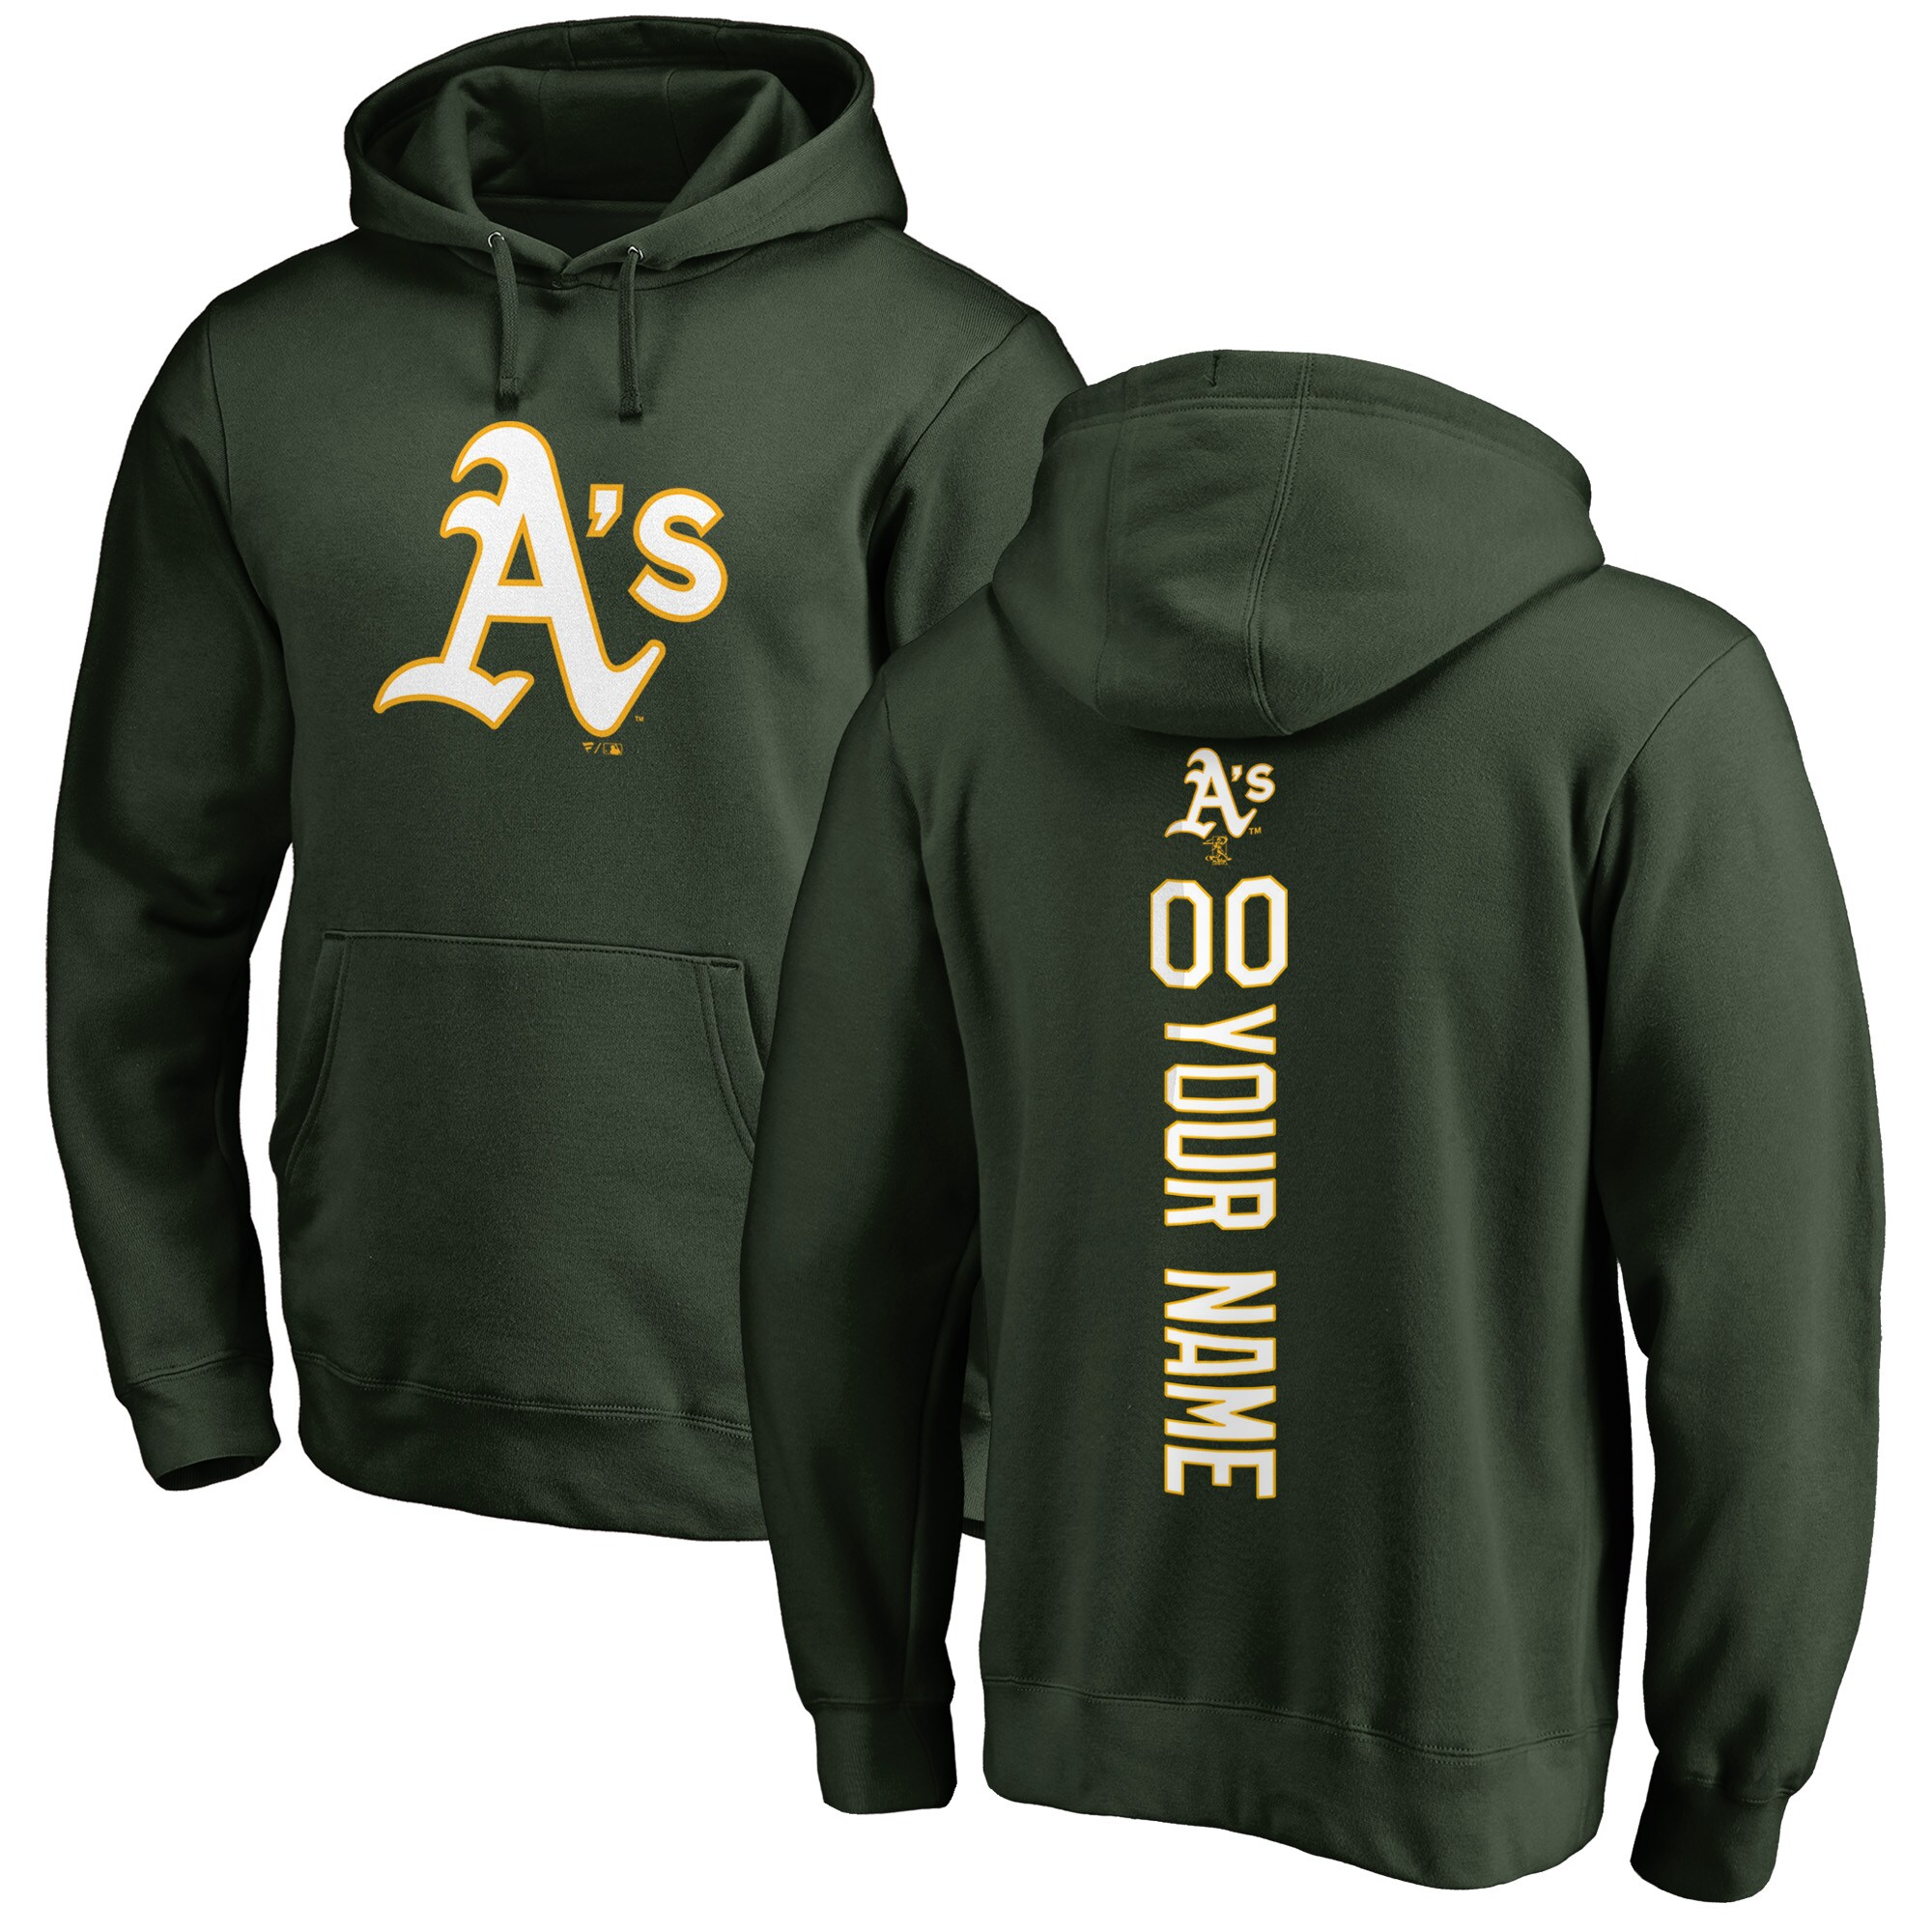 Oakland Athletics Fanatics Branded Personalized Playmaker Pullover Hoodie - Green